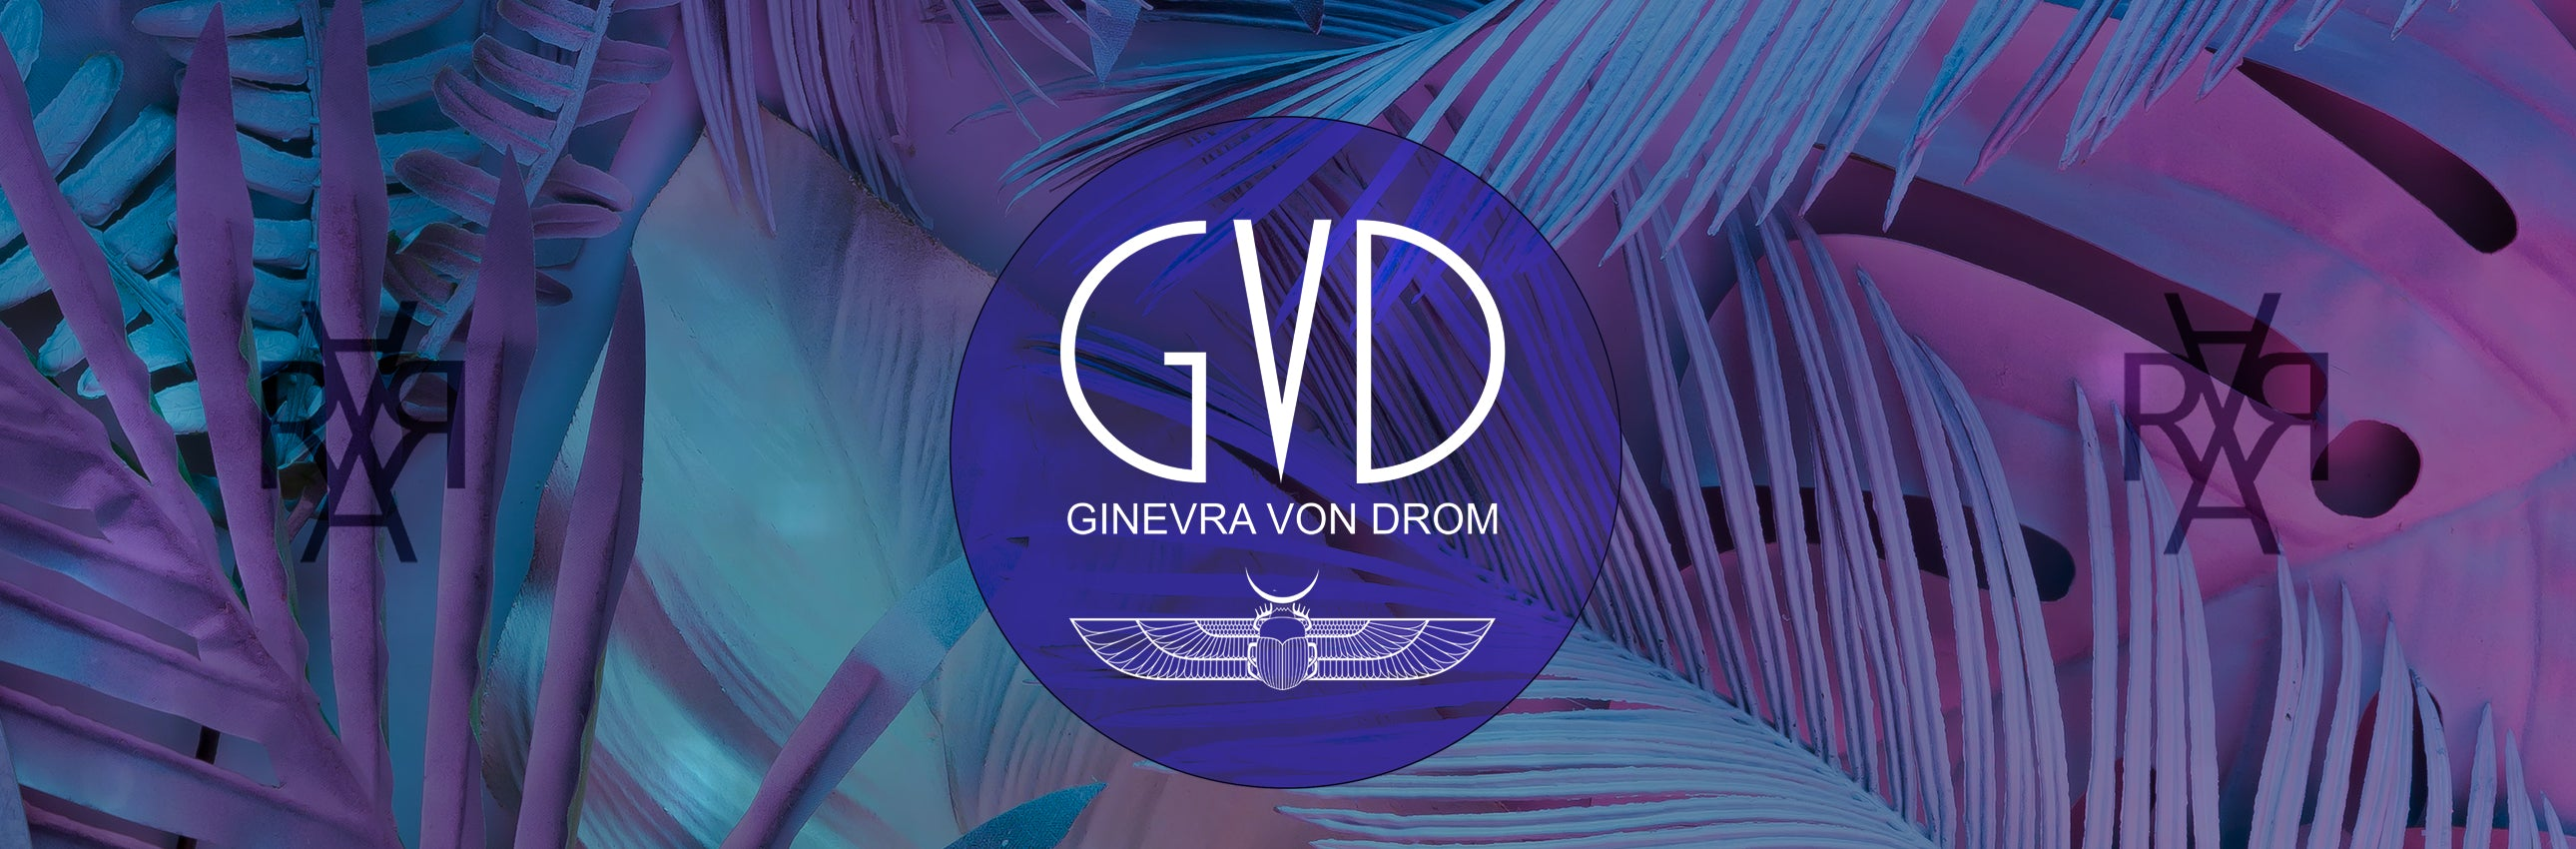 Ginevra Von Drom fashion escape